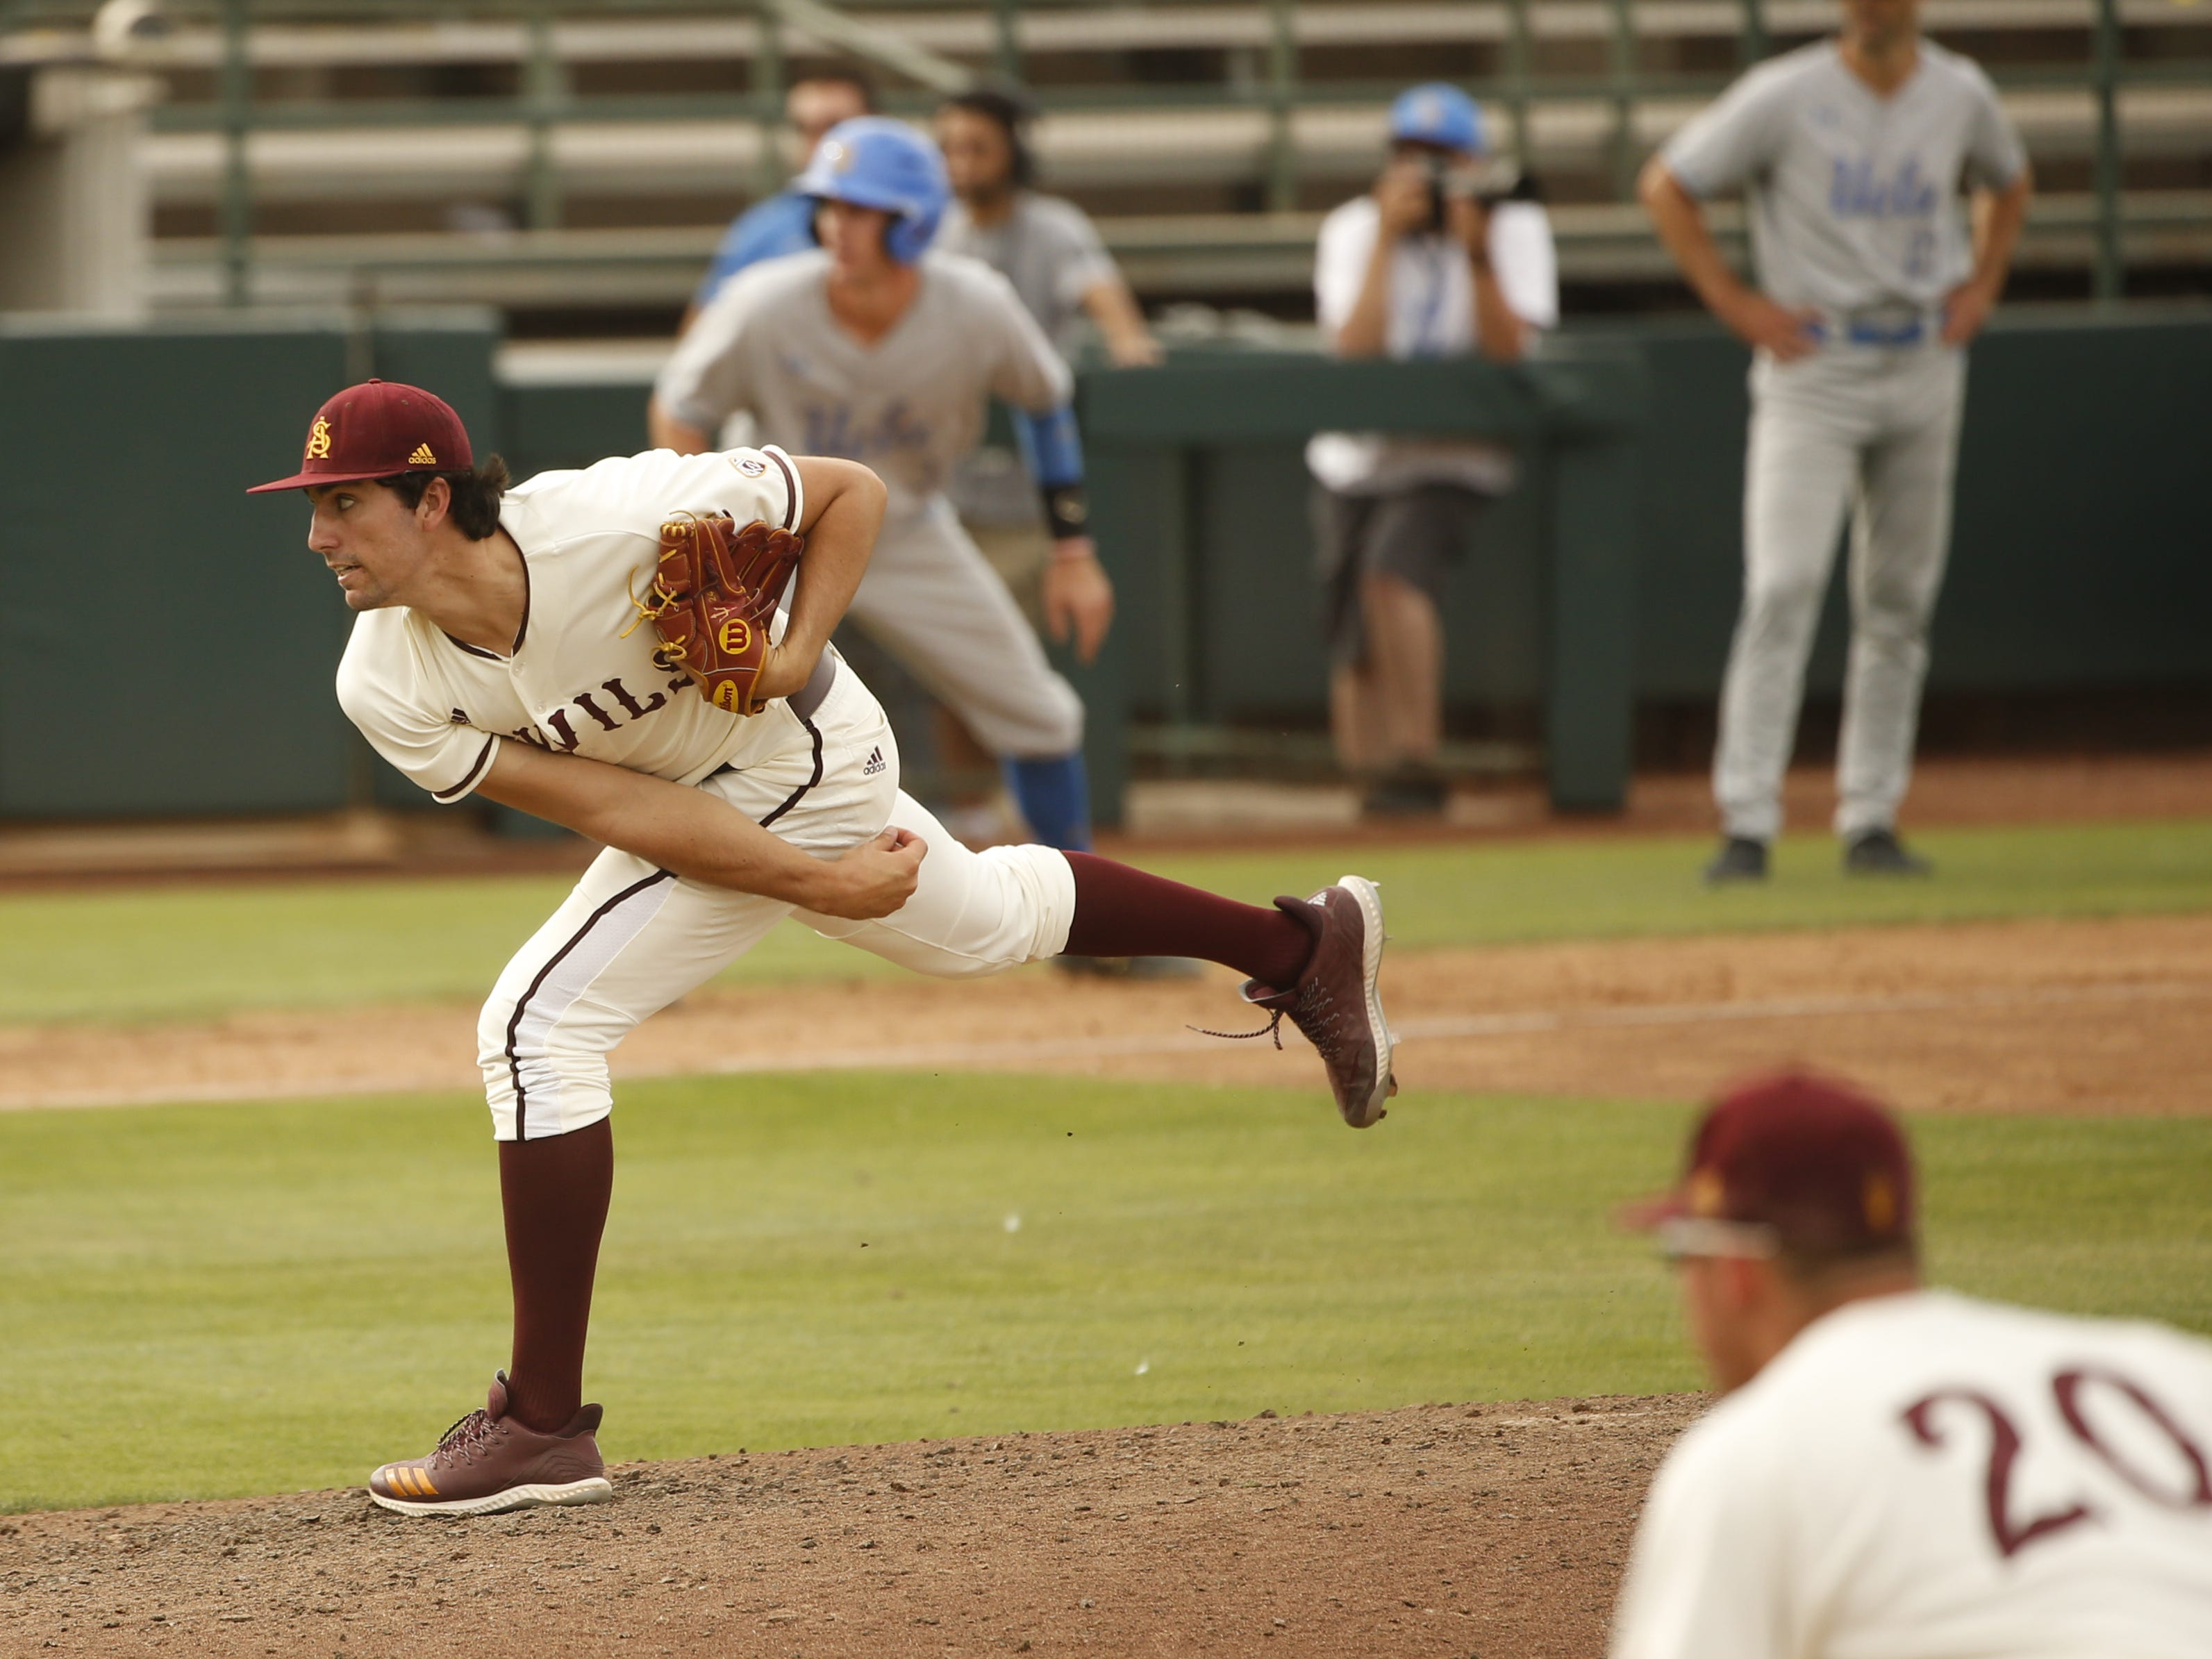 ASU's Blake Burzell (24) pitches in relief against UCLA during the seventh inning at Phoenix Municipal Stadium in Phoenix, Ariz. on May 5, 2019.